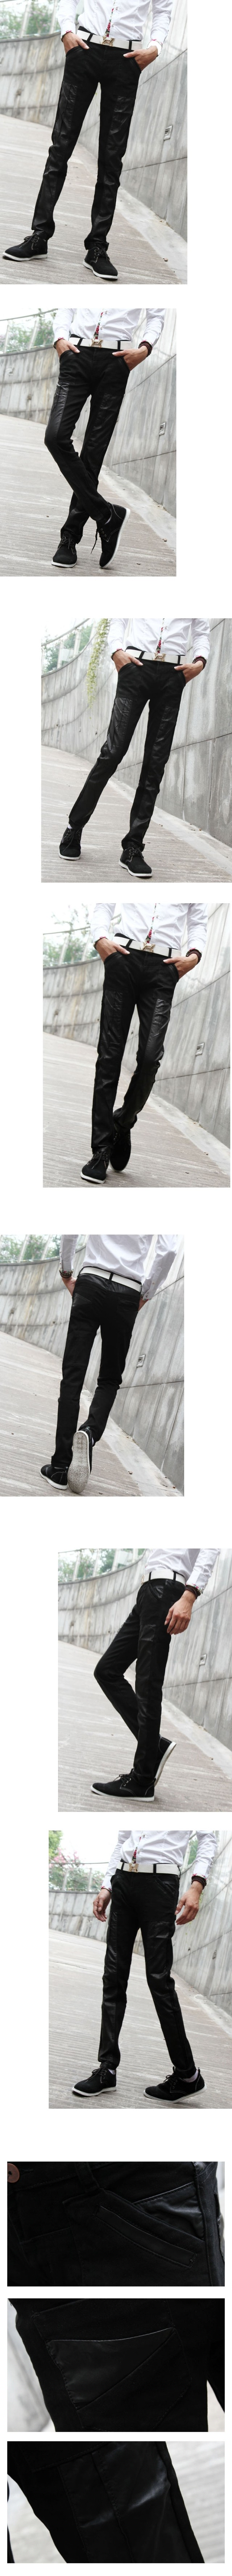 Entong Leather Slim Casual Matching Solid Comfortable Men Pants